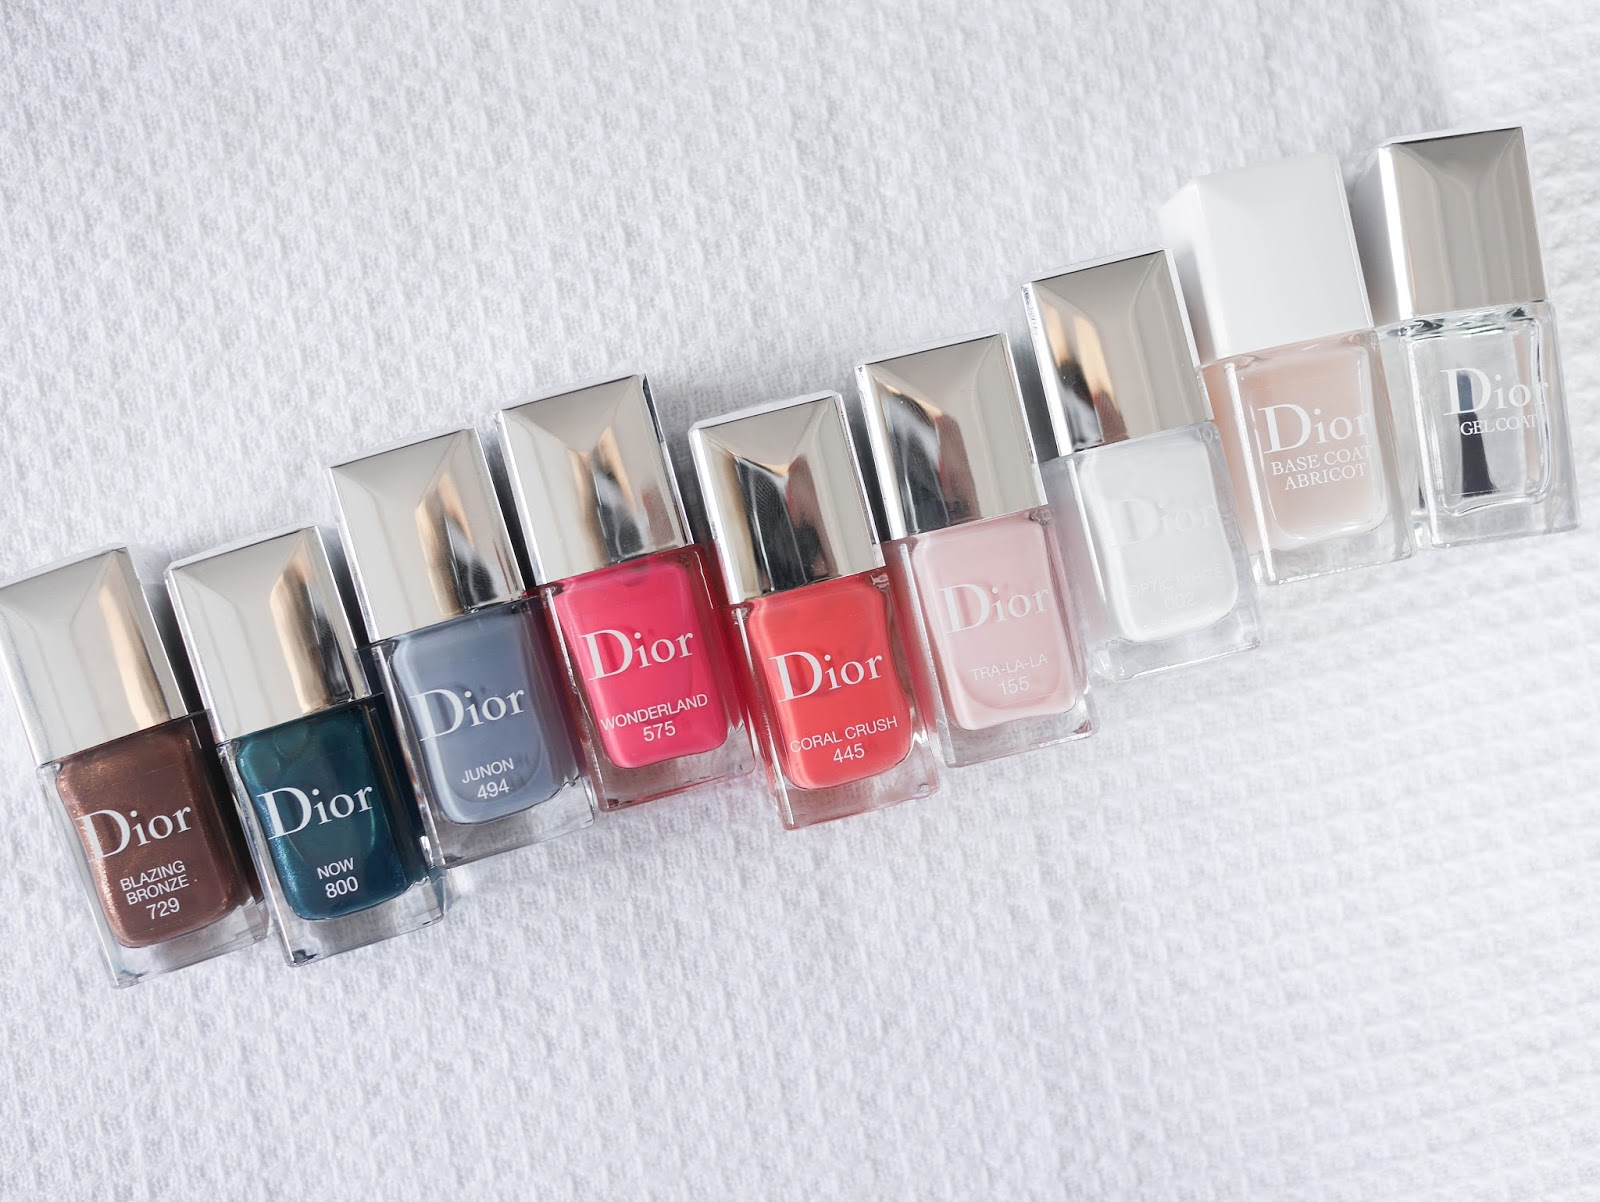 vernis dior parisgrenoble